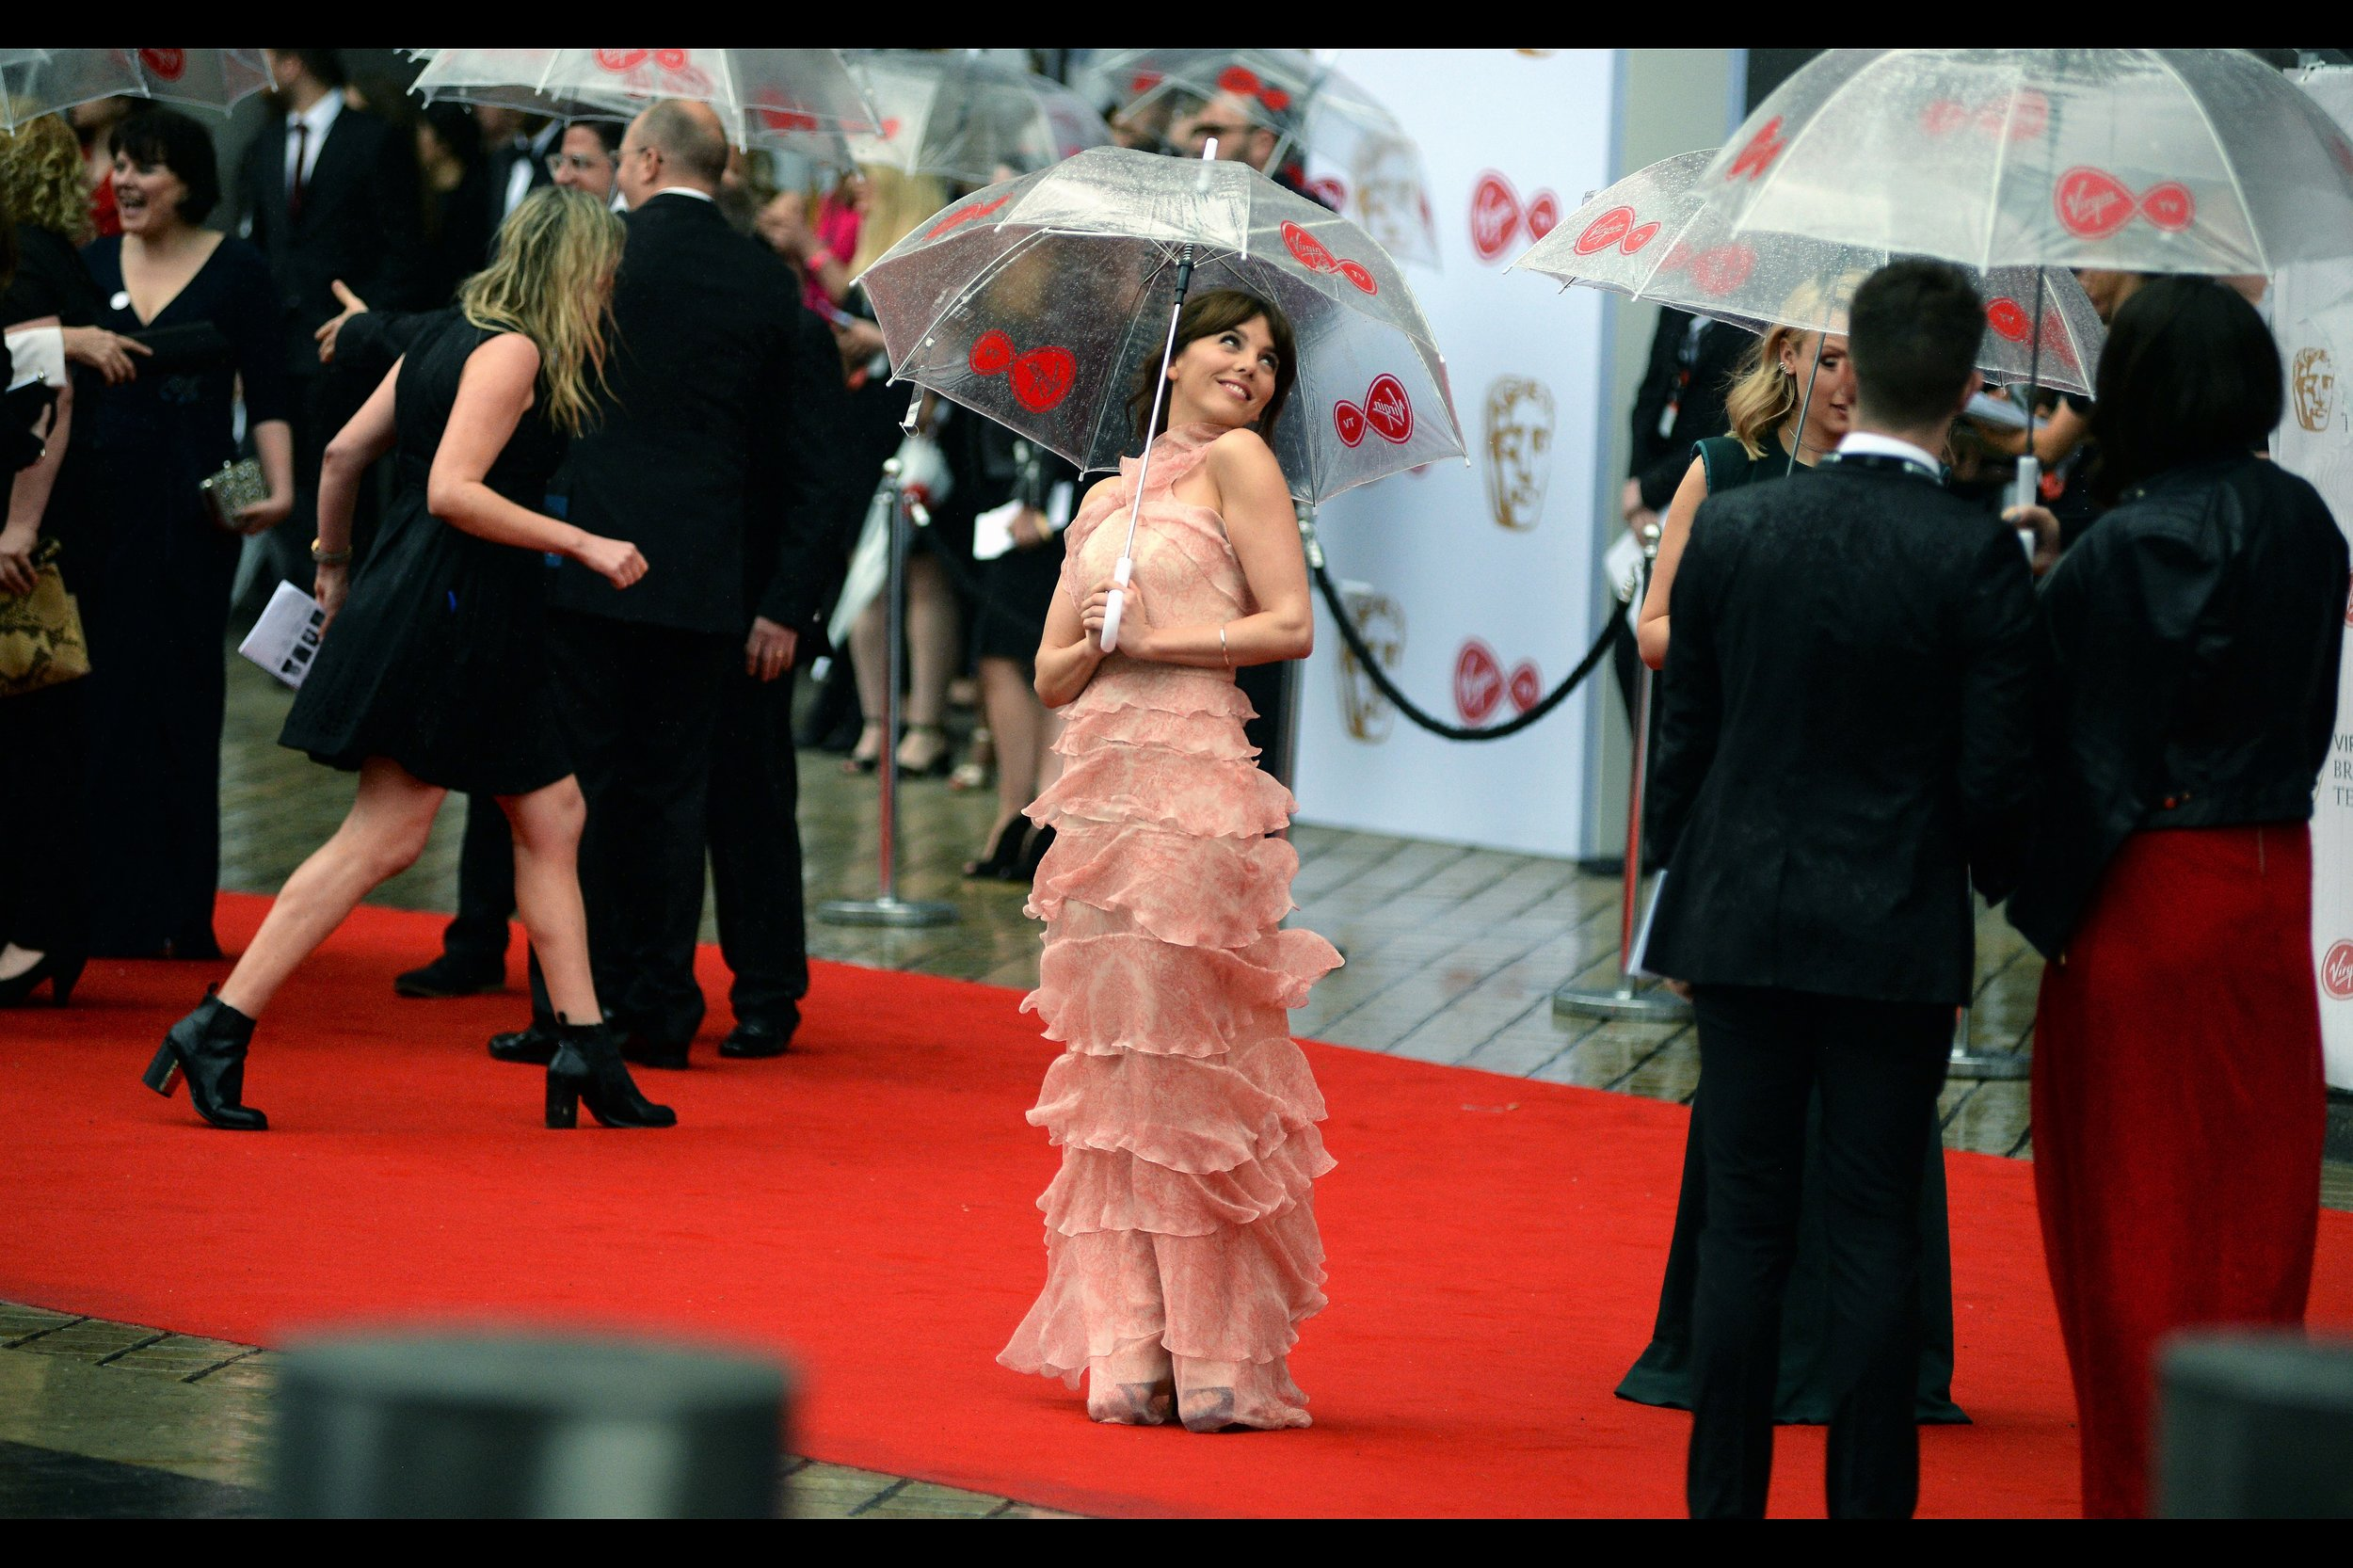 The imdb swears that Ophelia Lovibond played the role of The Collector's assistant in Guardians of the Galaxy (?), but I'm still to busy puzzling over whether the dress she's wearing is structurally possible in this rain. Or whether it needs it to survive.